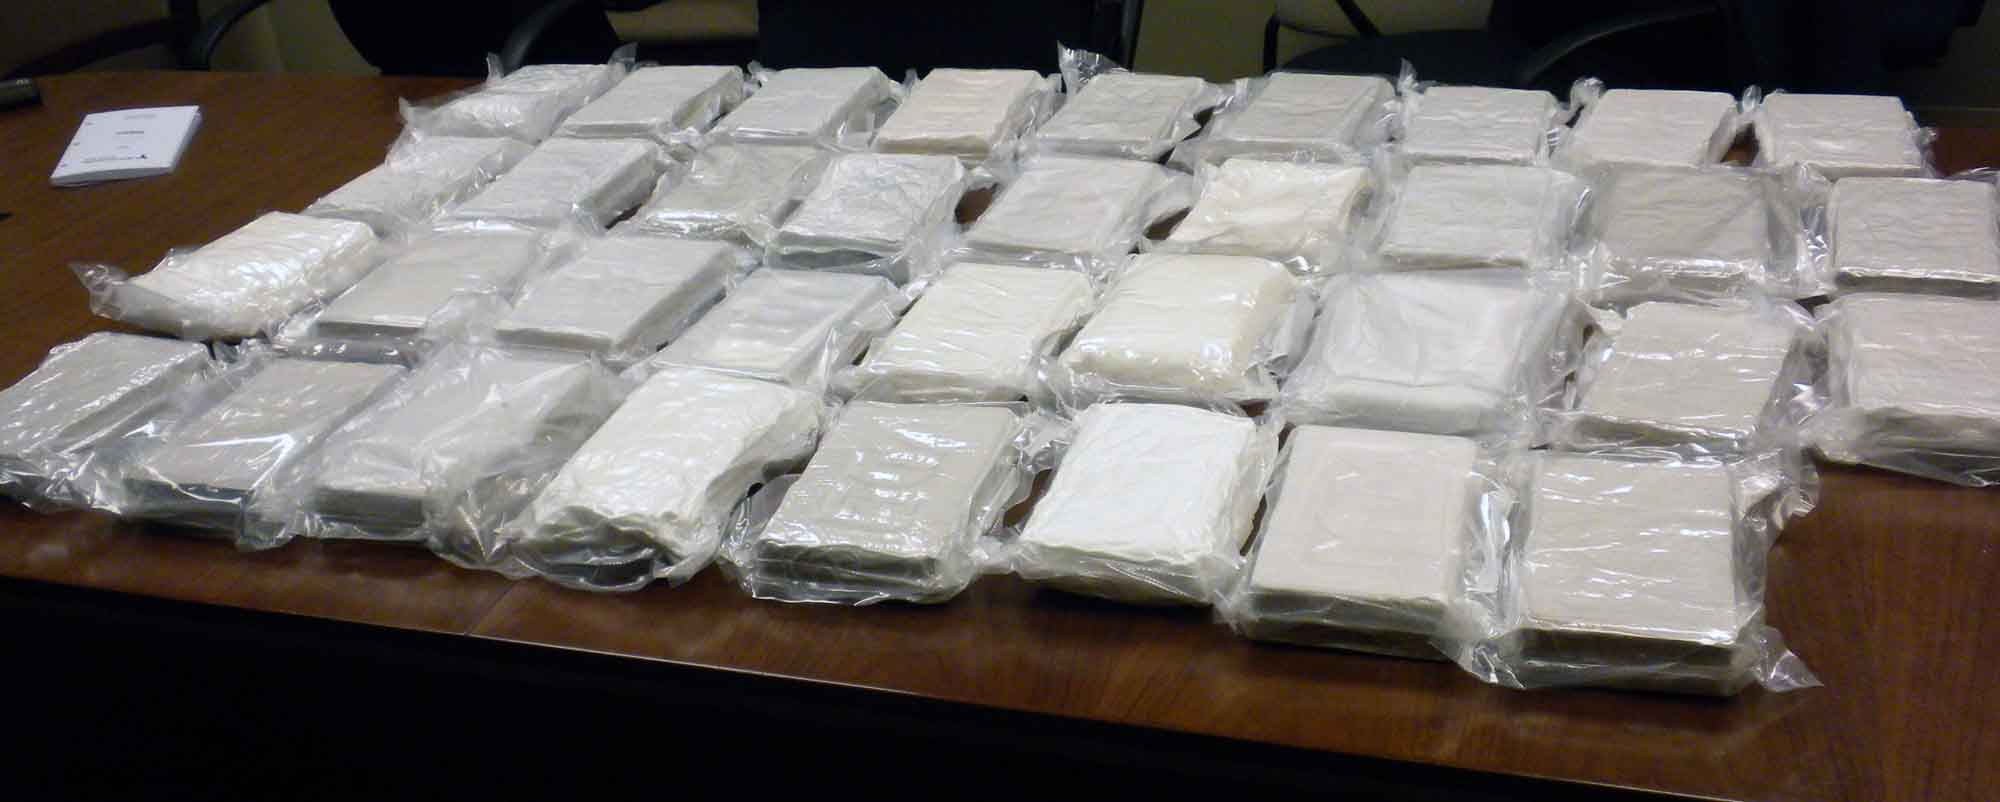 Major Cocaine Bust at Wharves